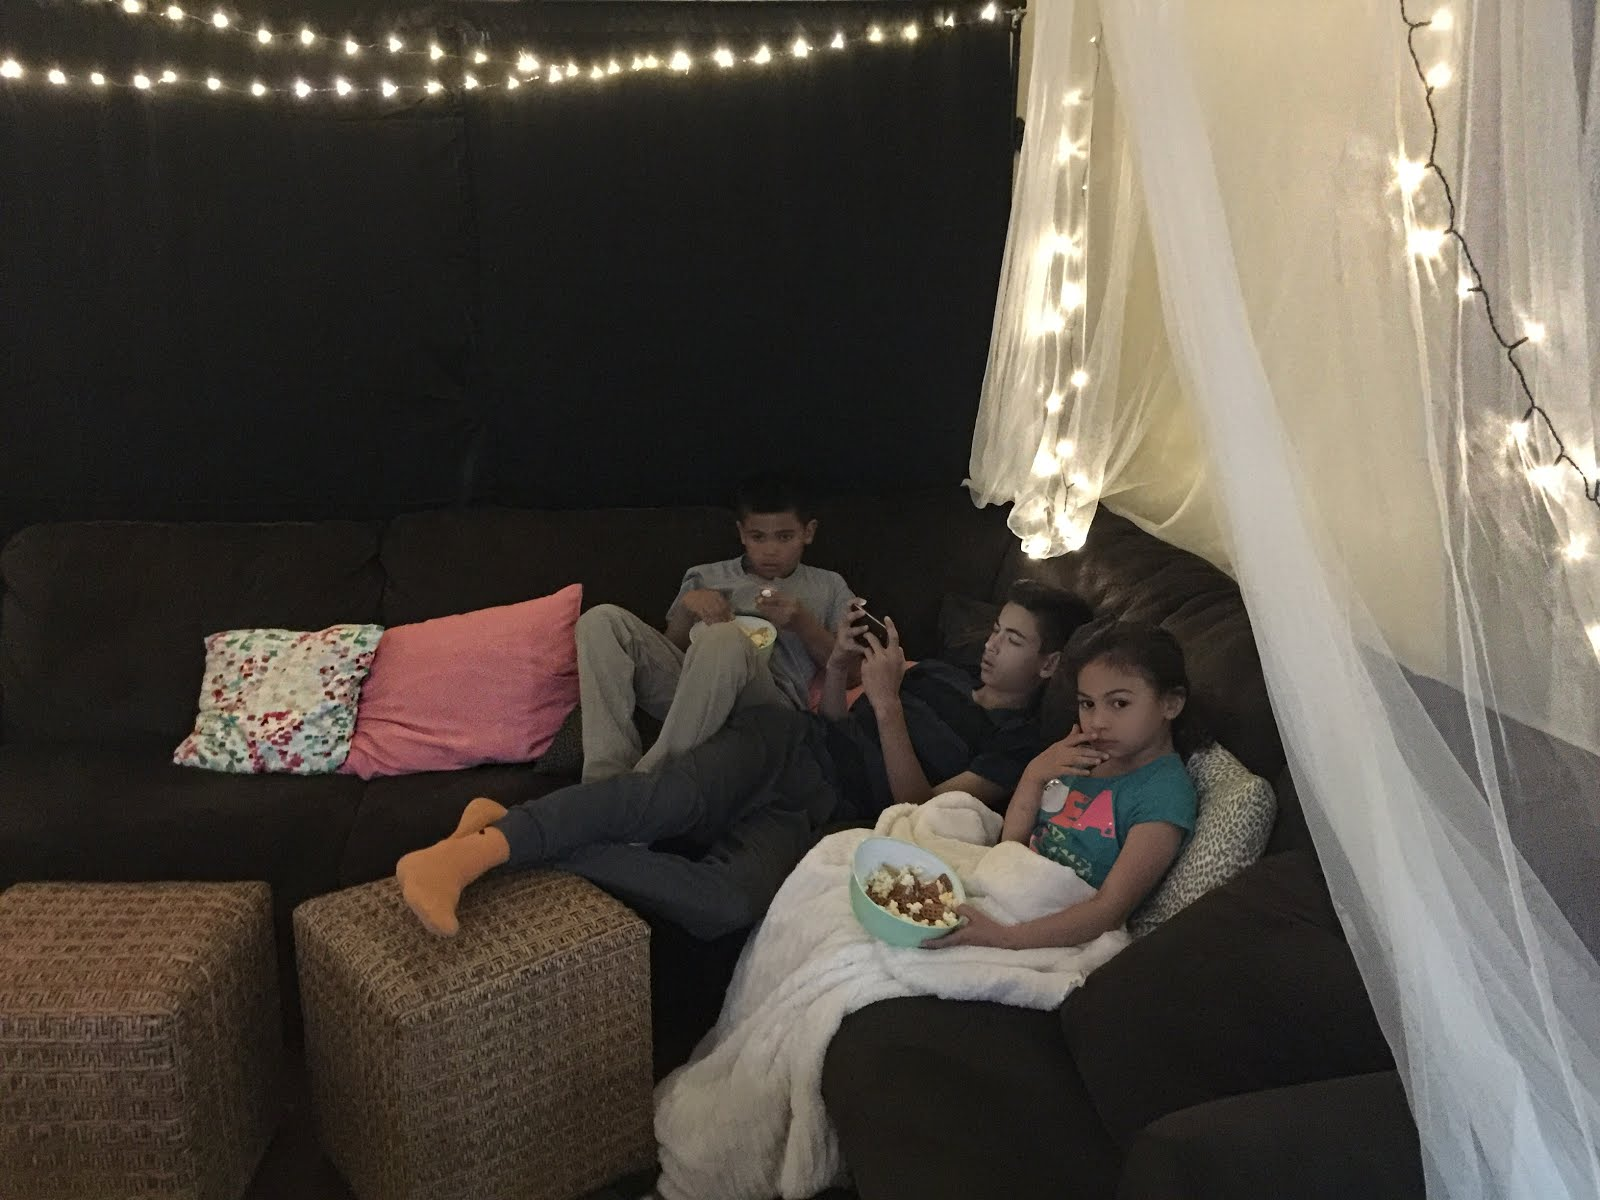 How to have a family campout indoors to watch movies on VUDU. Max Your Tax Cash with Walmart Family Mobile Plus.